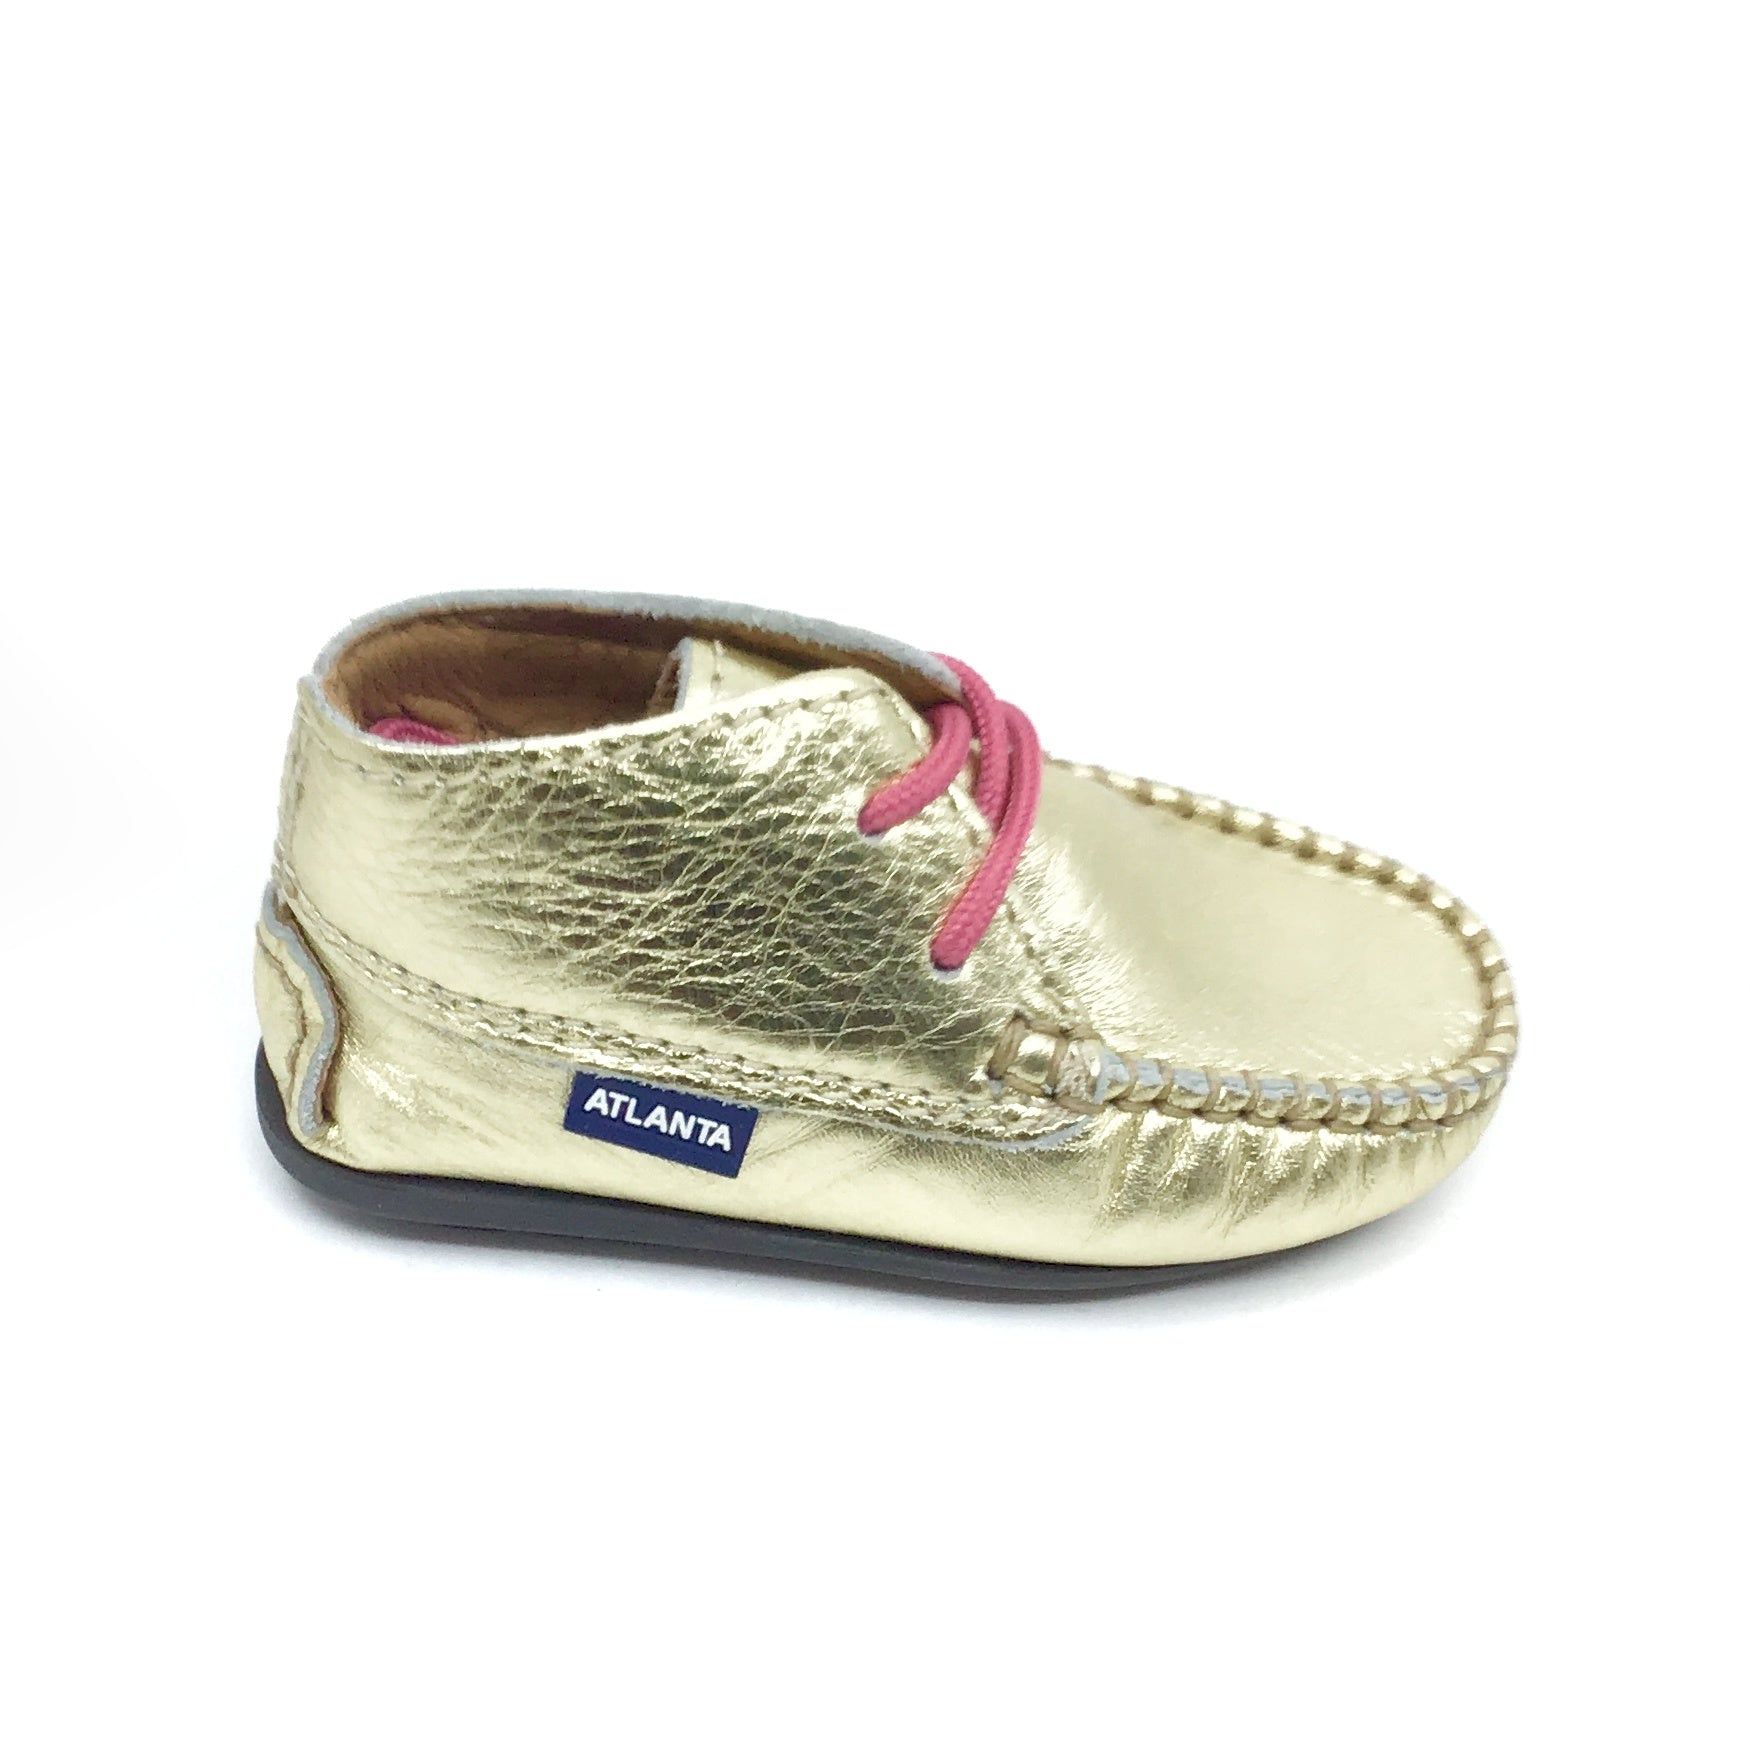 Atlanta Gold Baby Shoe